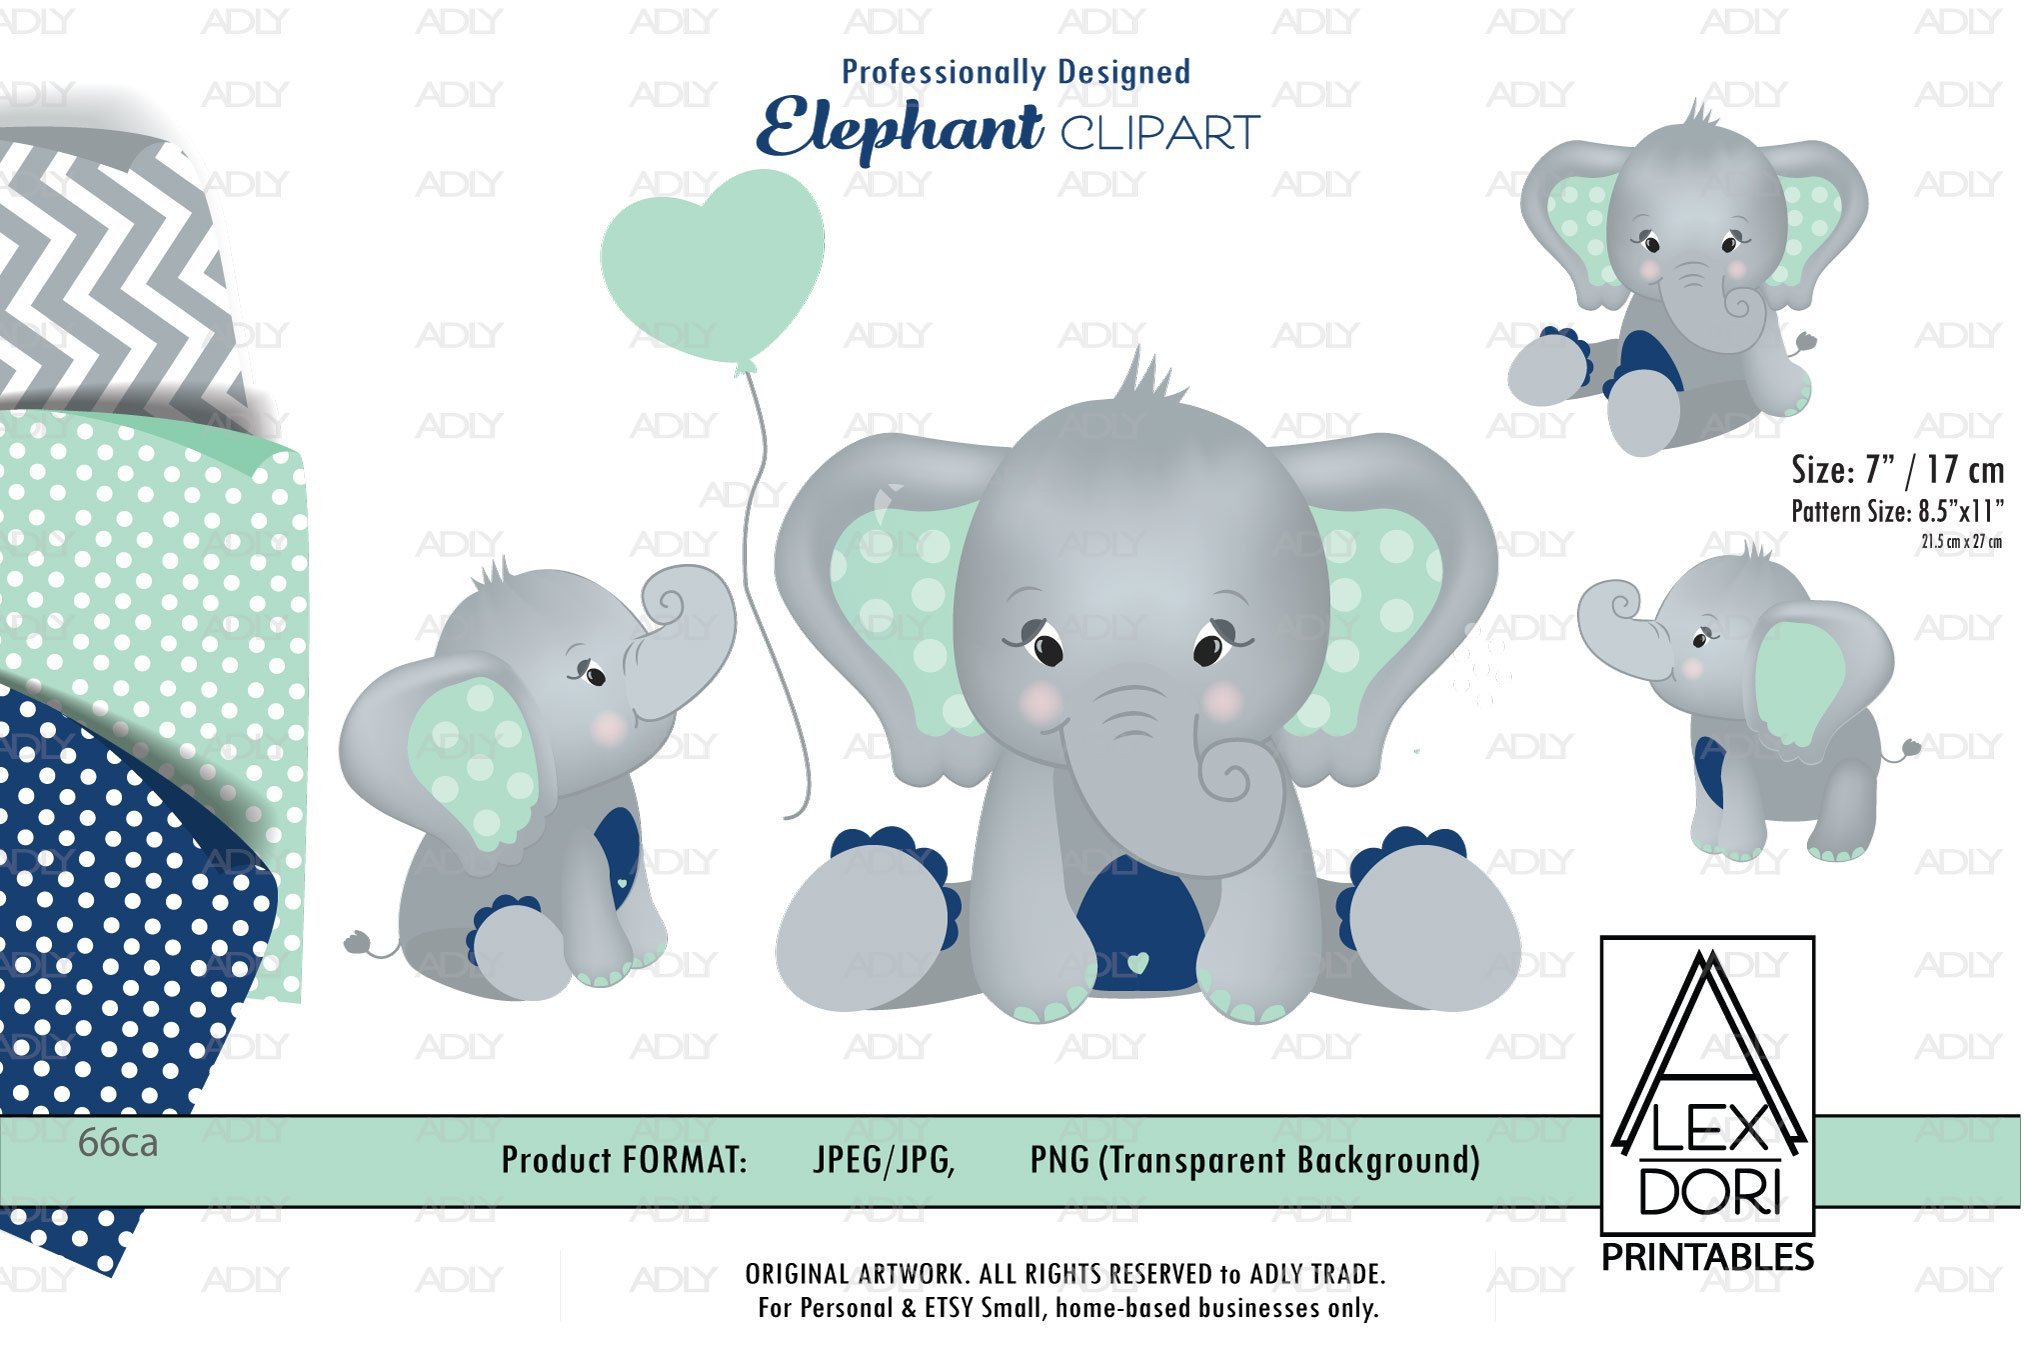 Mint And Navy Blue Baby Boy Elephant Png With Backgrounds 3 408996 Illustrations Design Bundles All our images are transparent and free for personal use. mint and navy blue baby boy elephant png with backgrounds 3